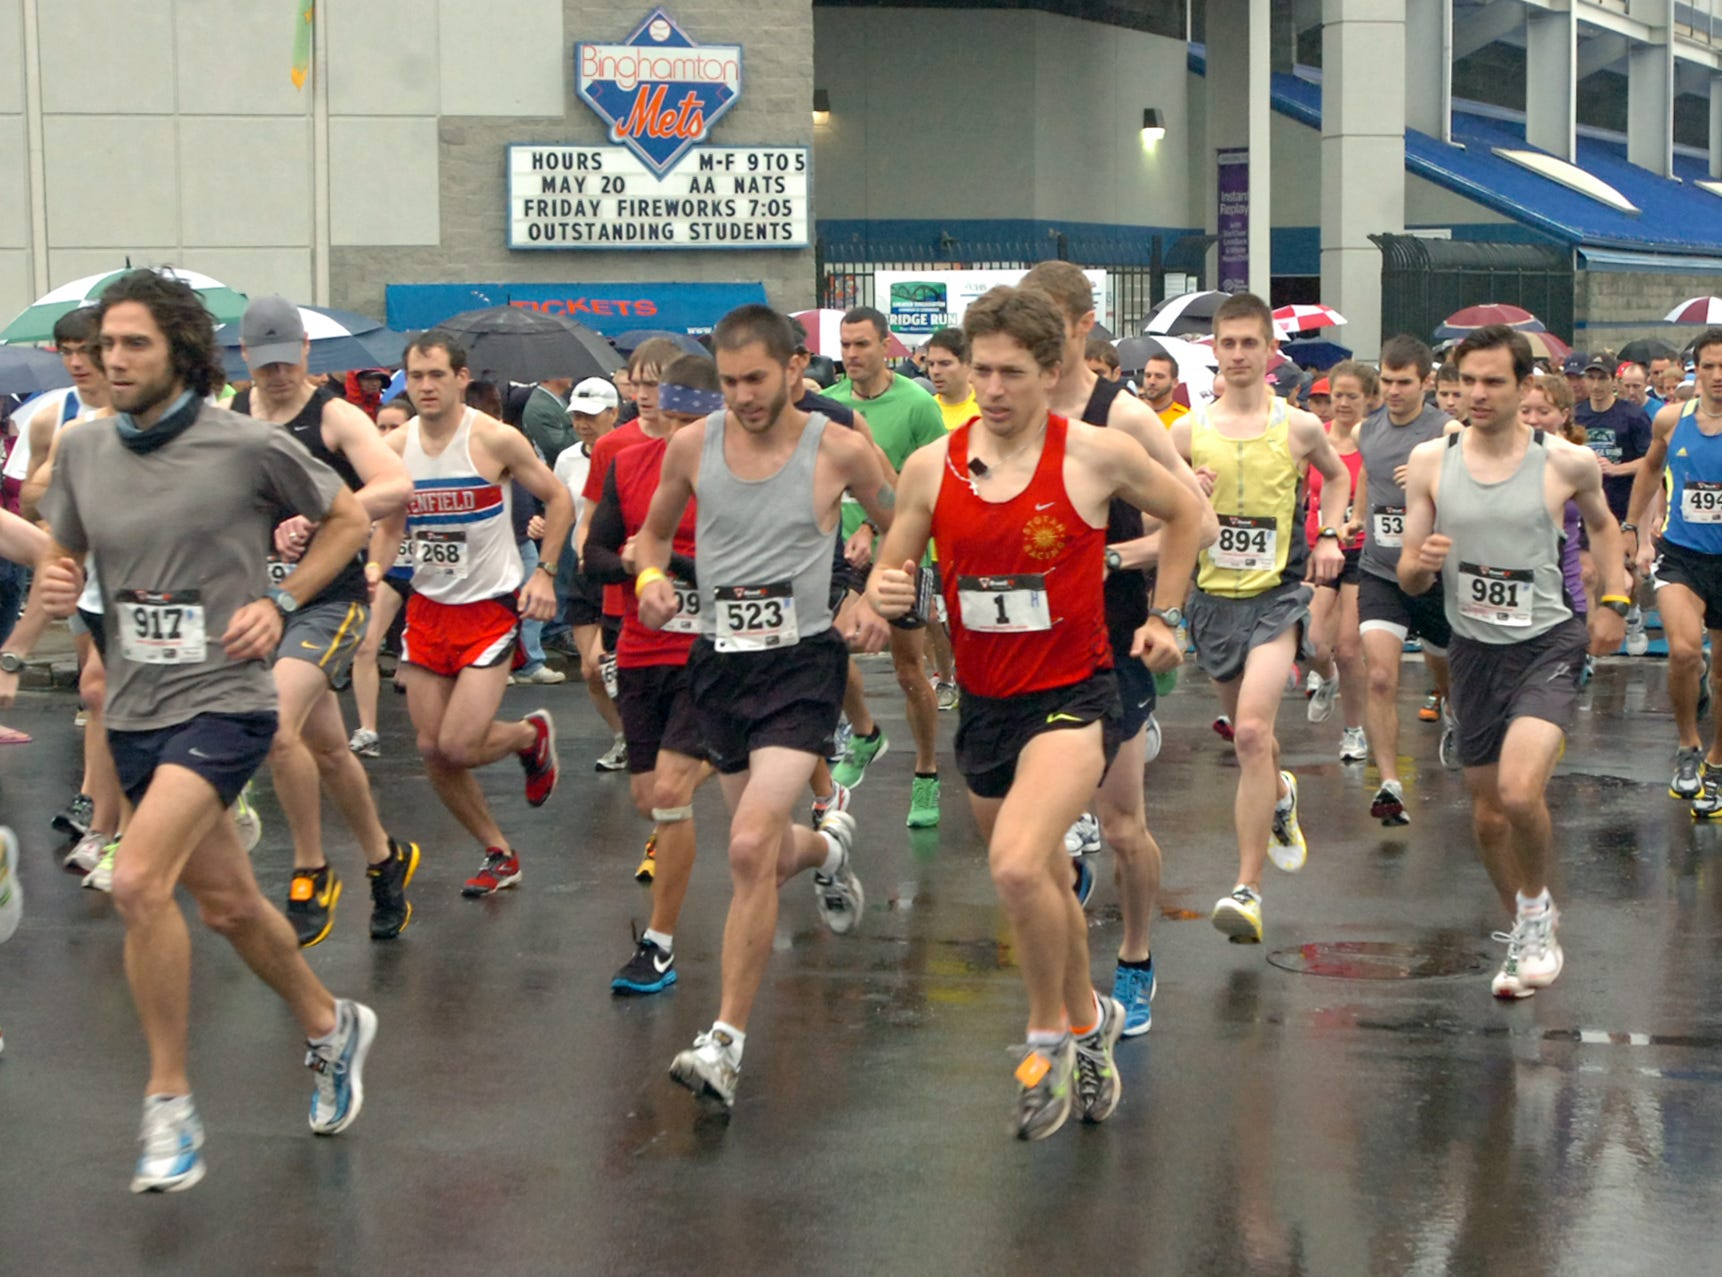 2011: Runners leave from the starting line outside NYSEG Stadium in the Greater Binghamton Bridge Run Half Marathon on Sunday. Roughly 890 runners competed in the inaugural race through the streets and over bridges in downtown Binghamton.